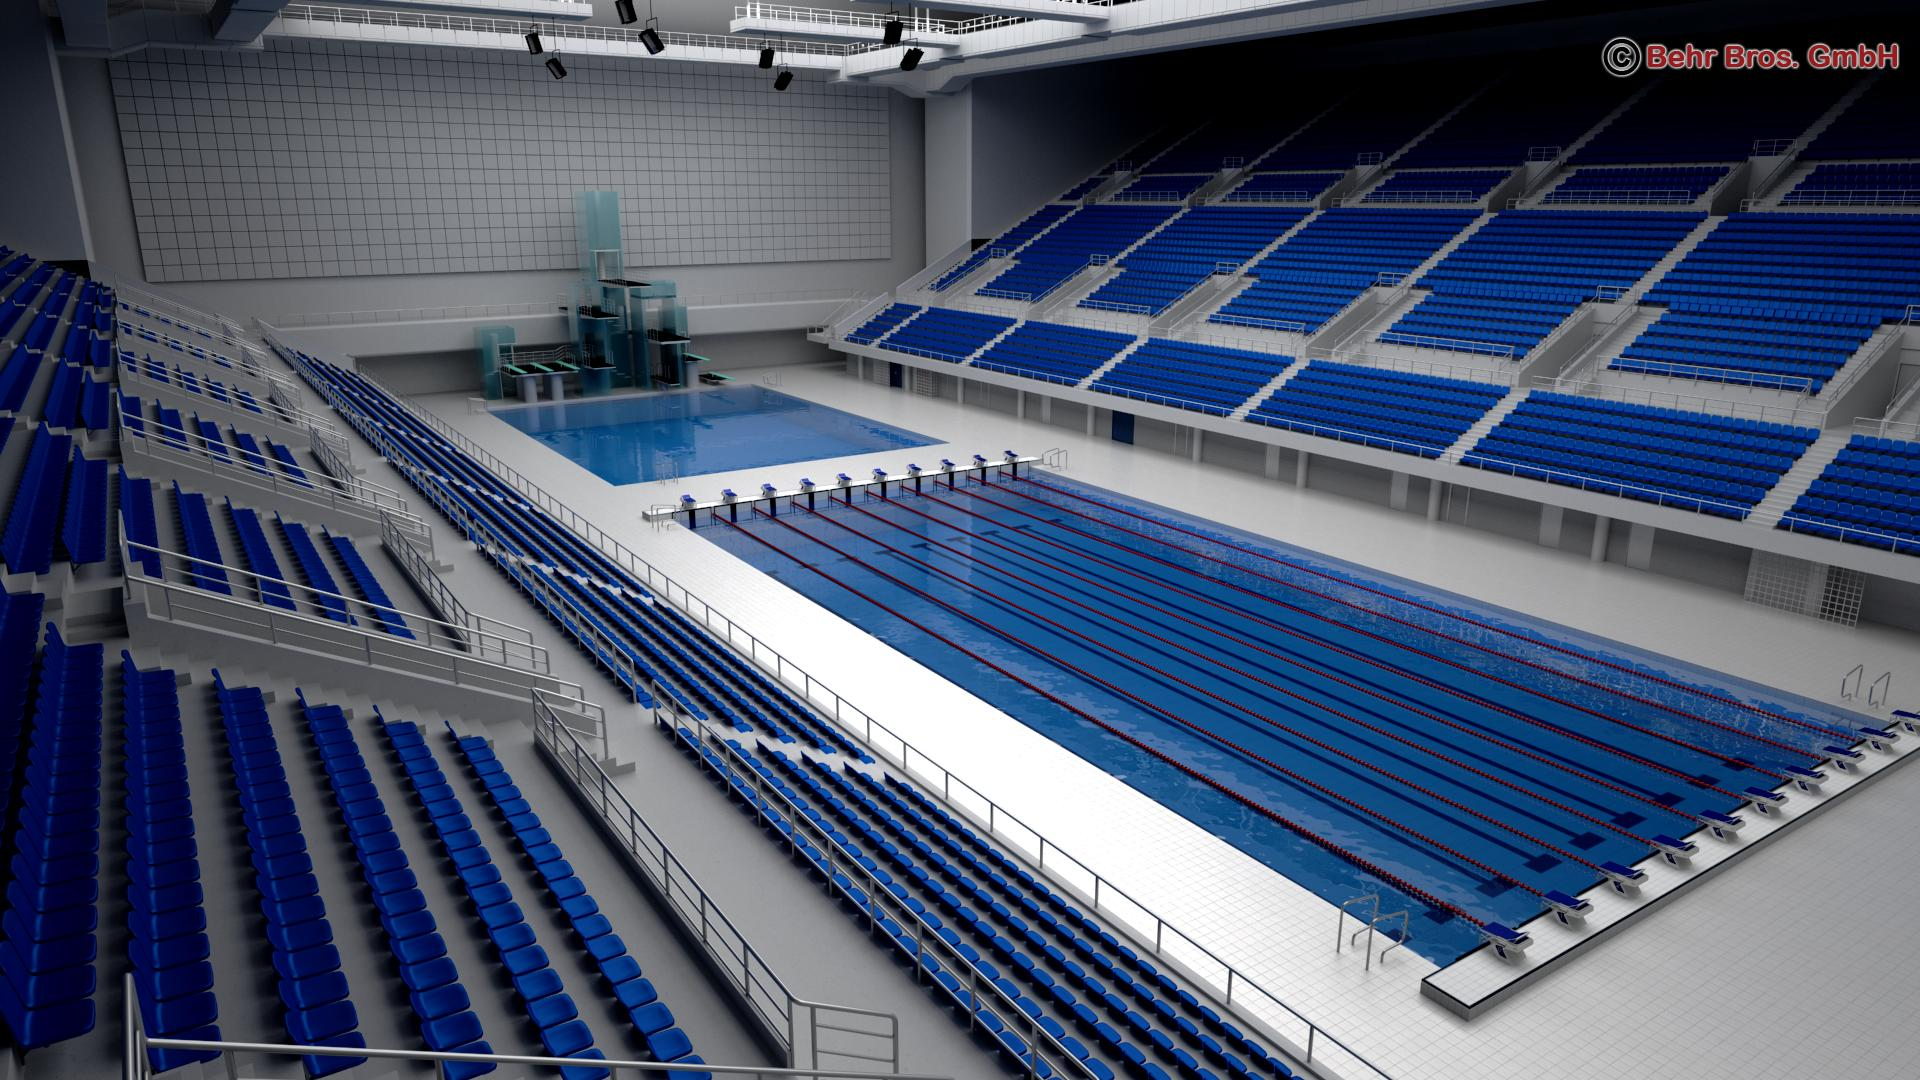 swim stadium 3d model 3ds max fbx c4d lwo ma mb obj 204429